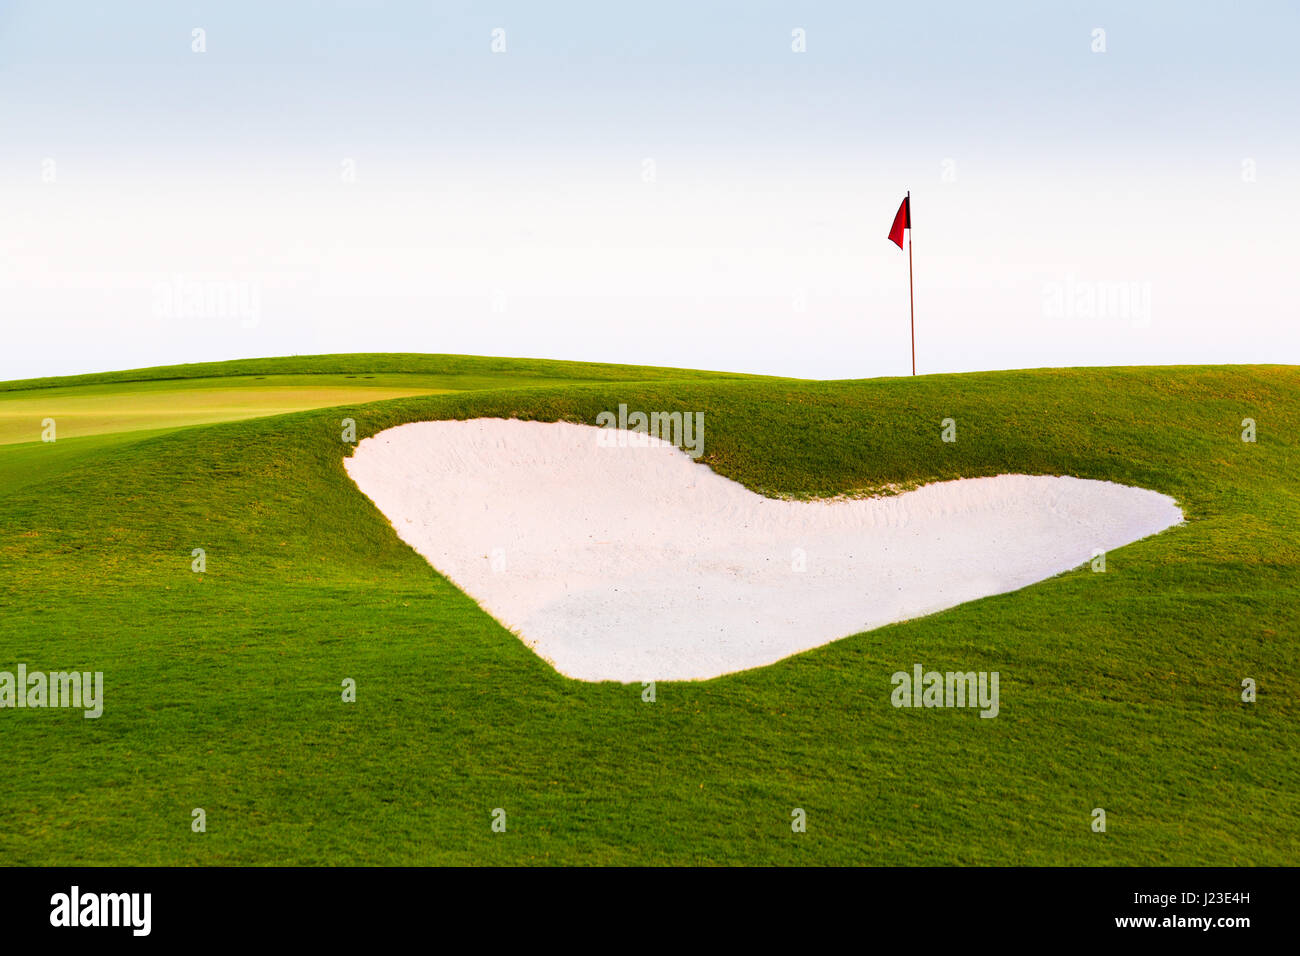 Heart shaped sand trap golf bunker on a golf course - Stock Image